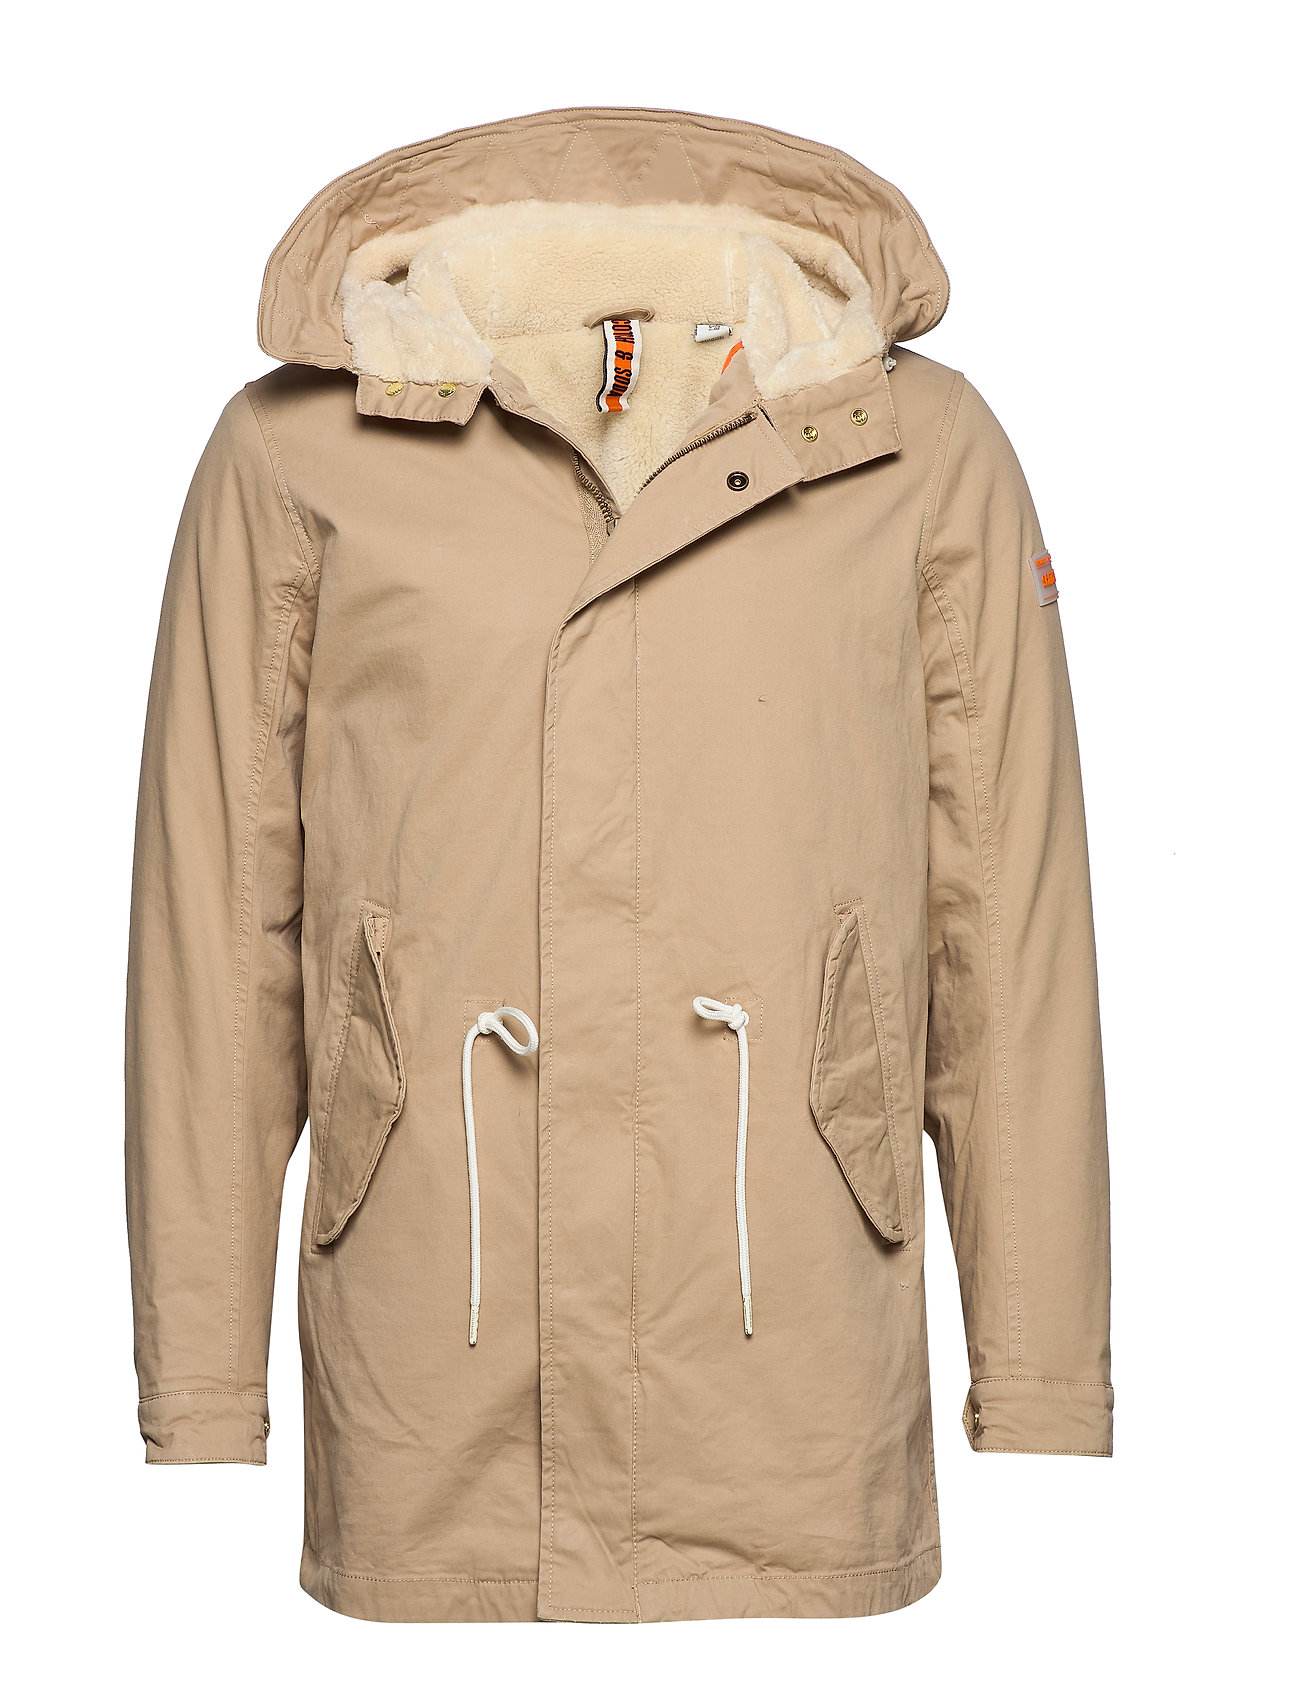 Image of Classic Hooded Parka With Teddy And Mesh Lining Parka Jakke Beige Scotch & Soda (3234149739)